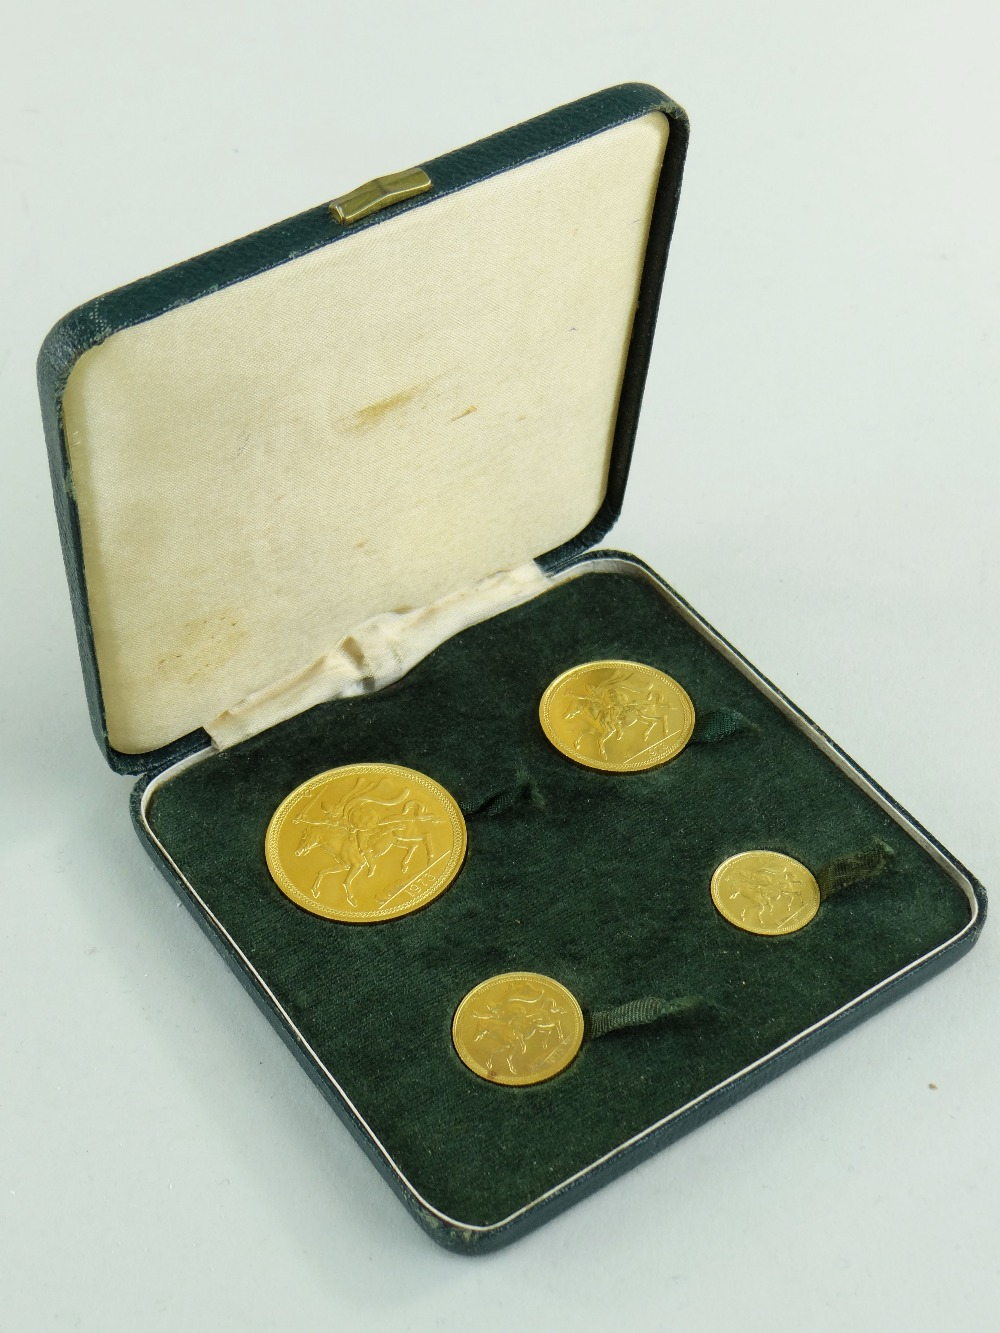 POBJOY MINT ISLE OF MAN 1973 GOLD FOUR COIN SOVEREIGN SET comprising £5 coin, £2 coin, sovereign and - Image 3 of 4